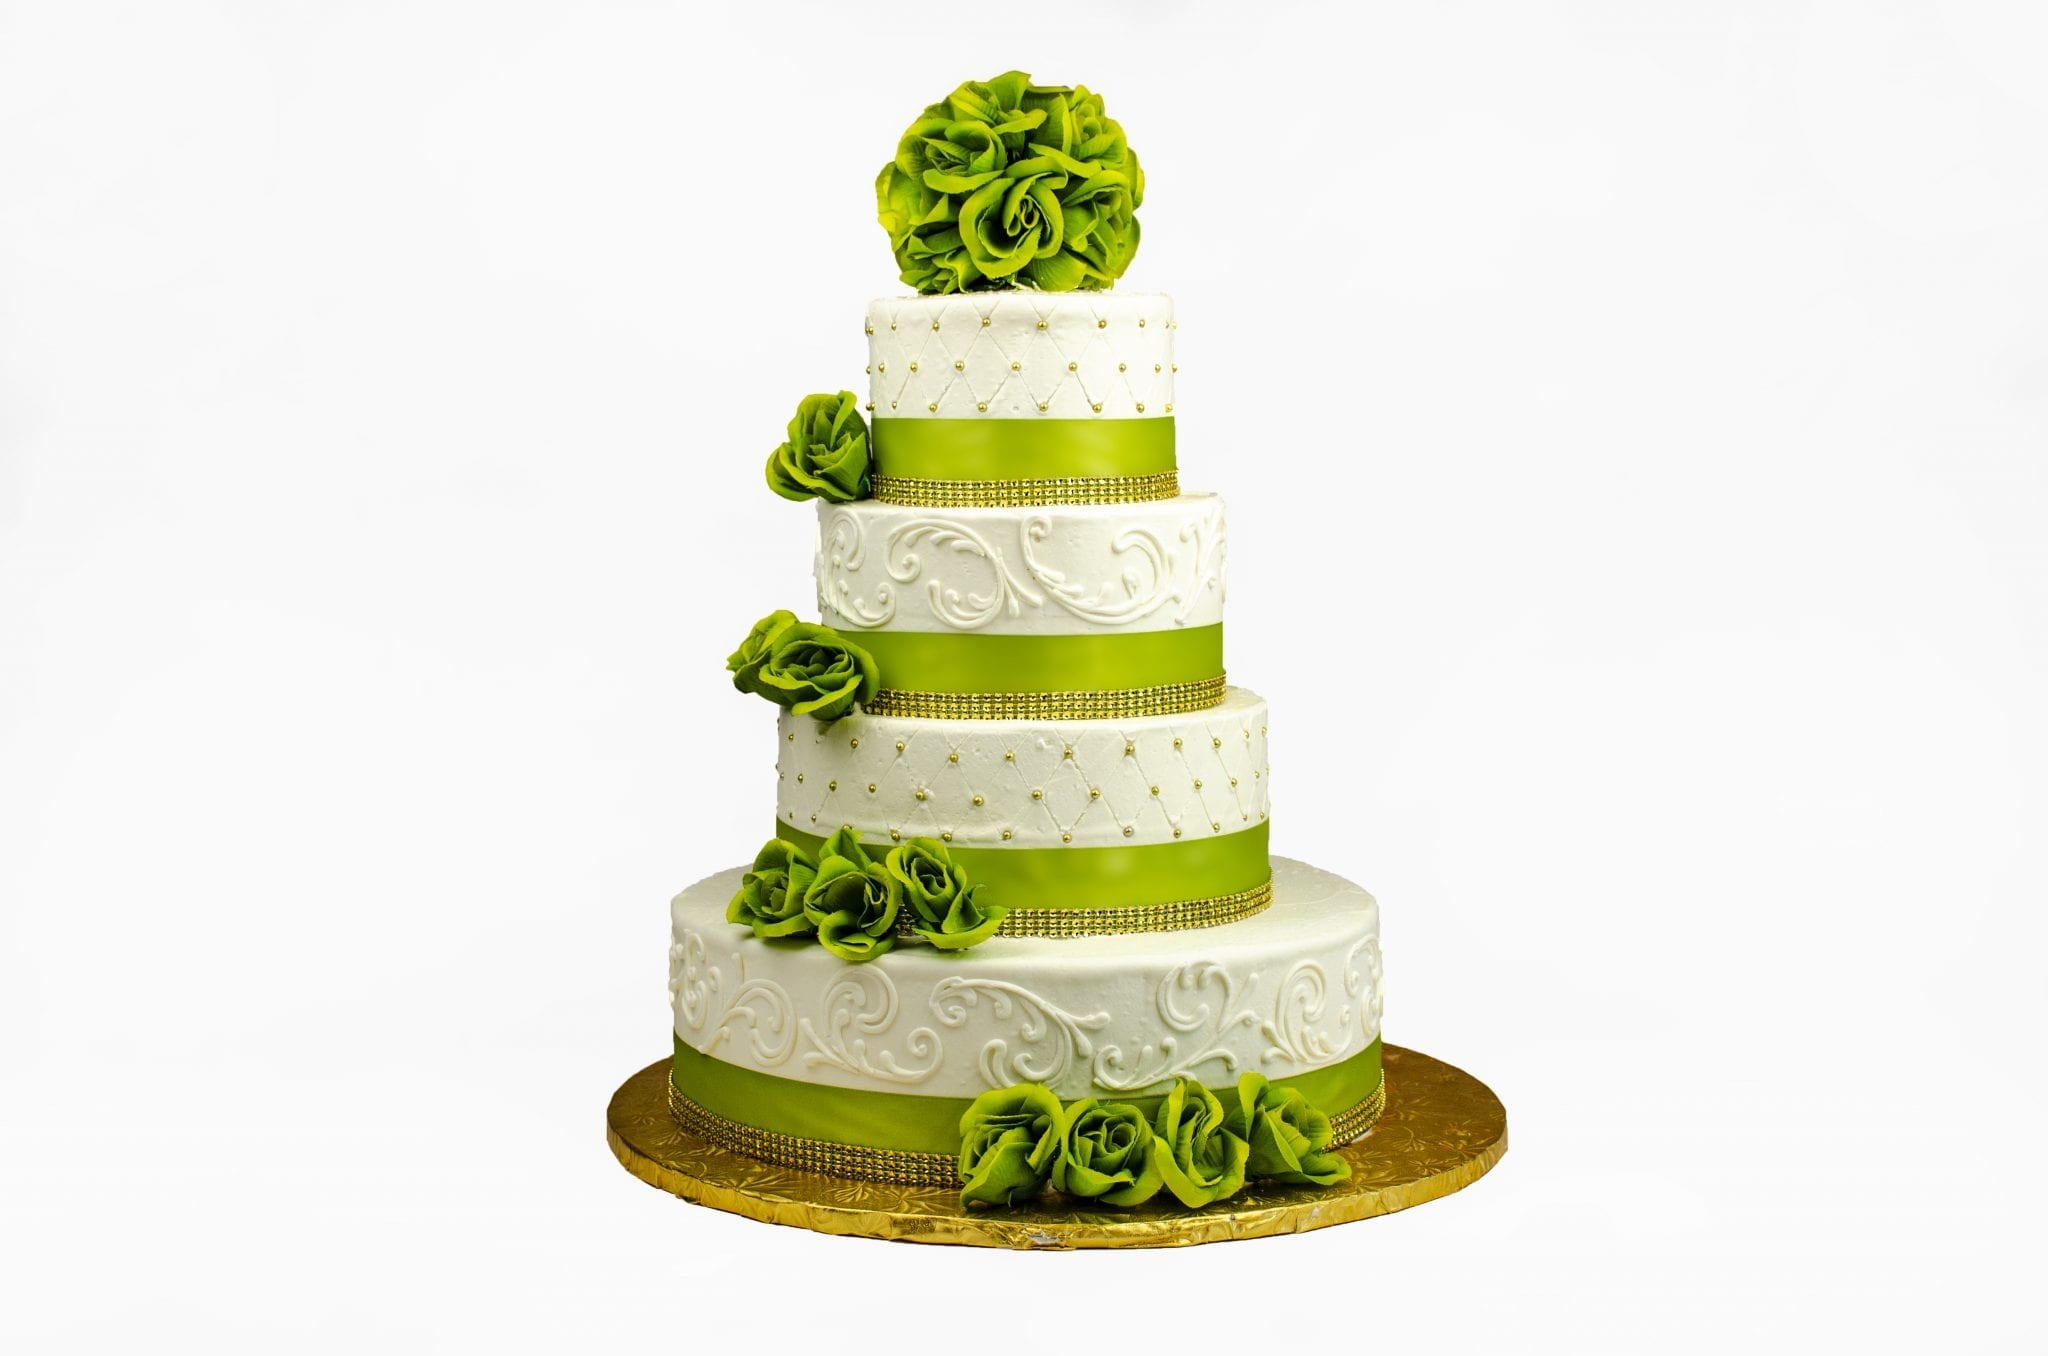 White wedding cake with green ribbons and flowers